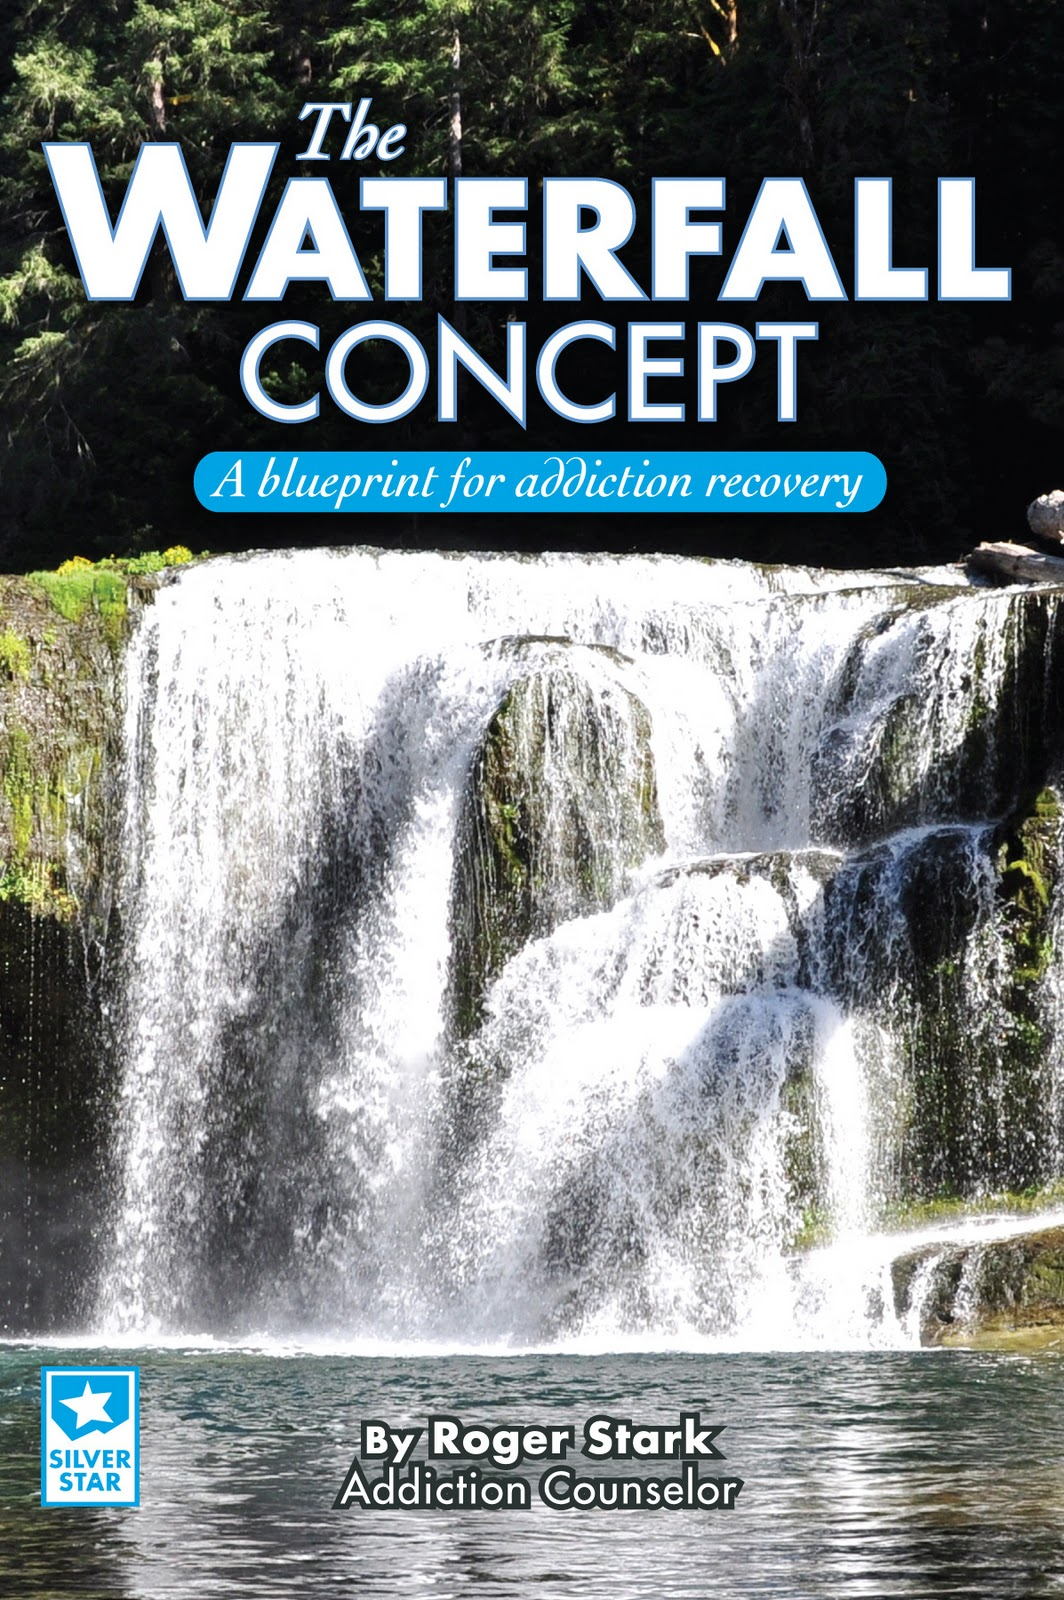 Stephanie says so book review the waterfall concept a blueprint the waterfall concept a blueprint for addiction recovery by roger stark silver star publishing 192 pages 1995 malvernweather Image collections